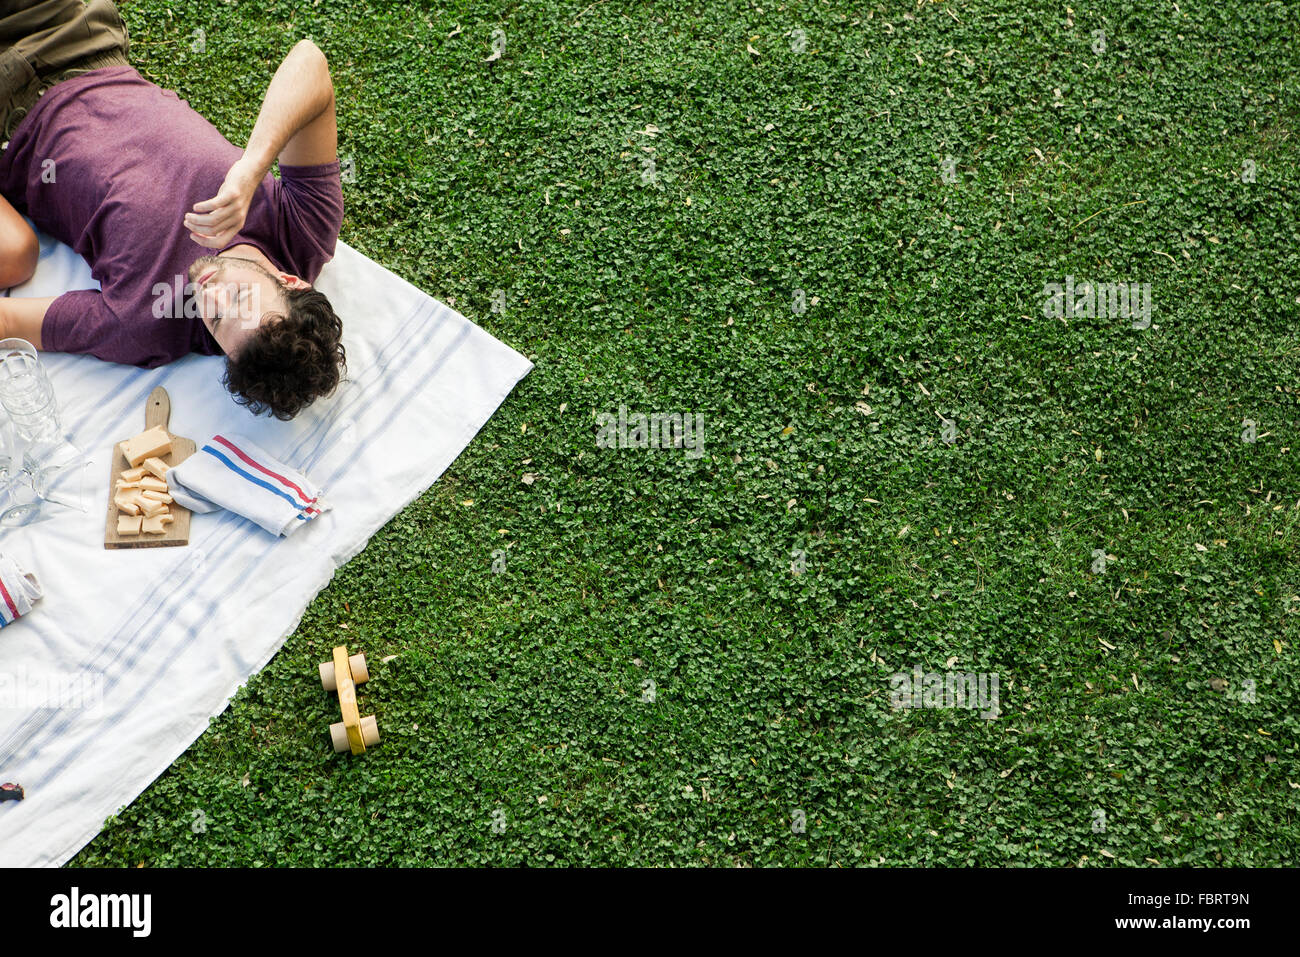 Summer picnic in the park with friends - Stock Image